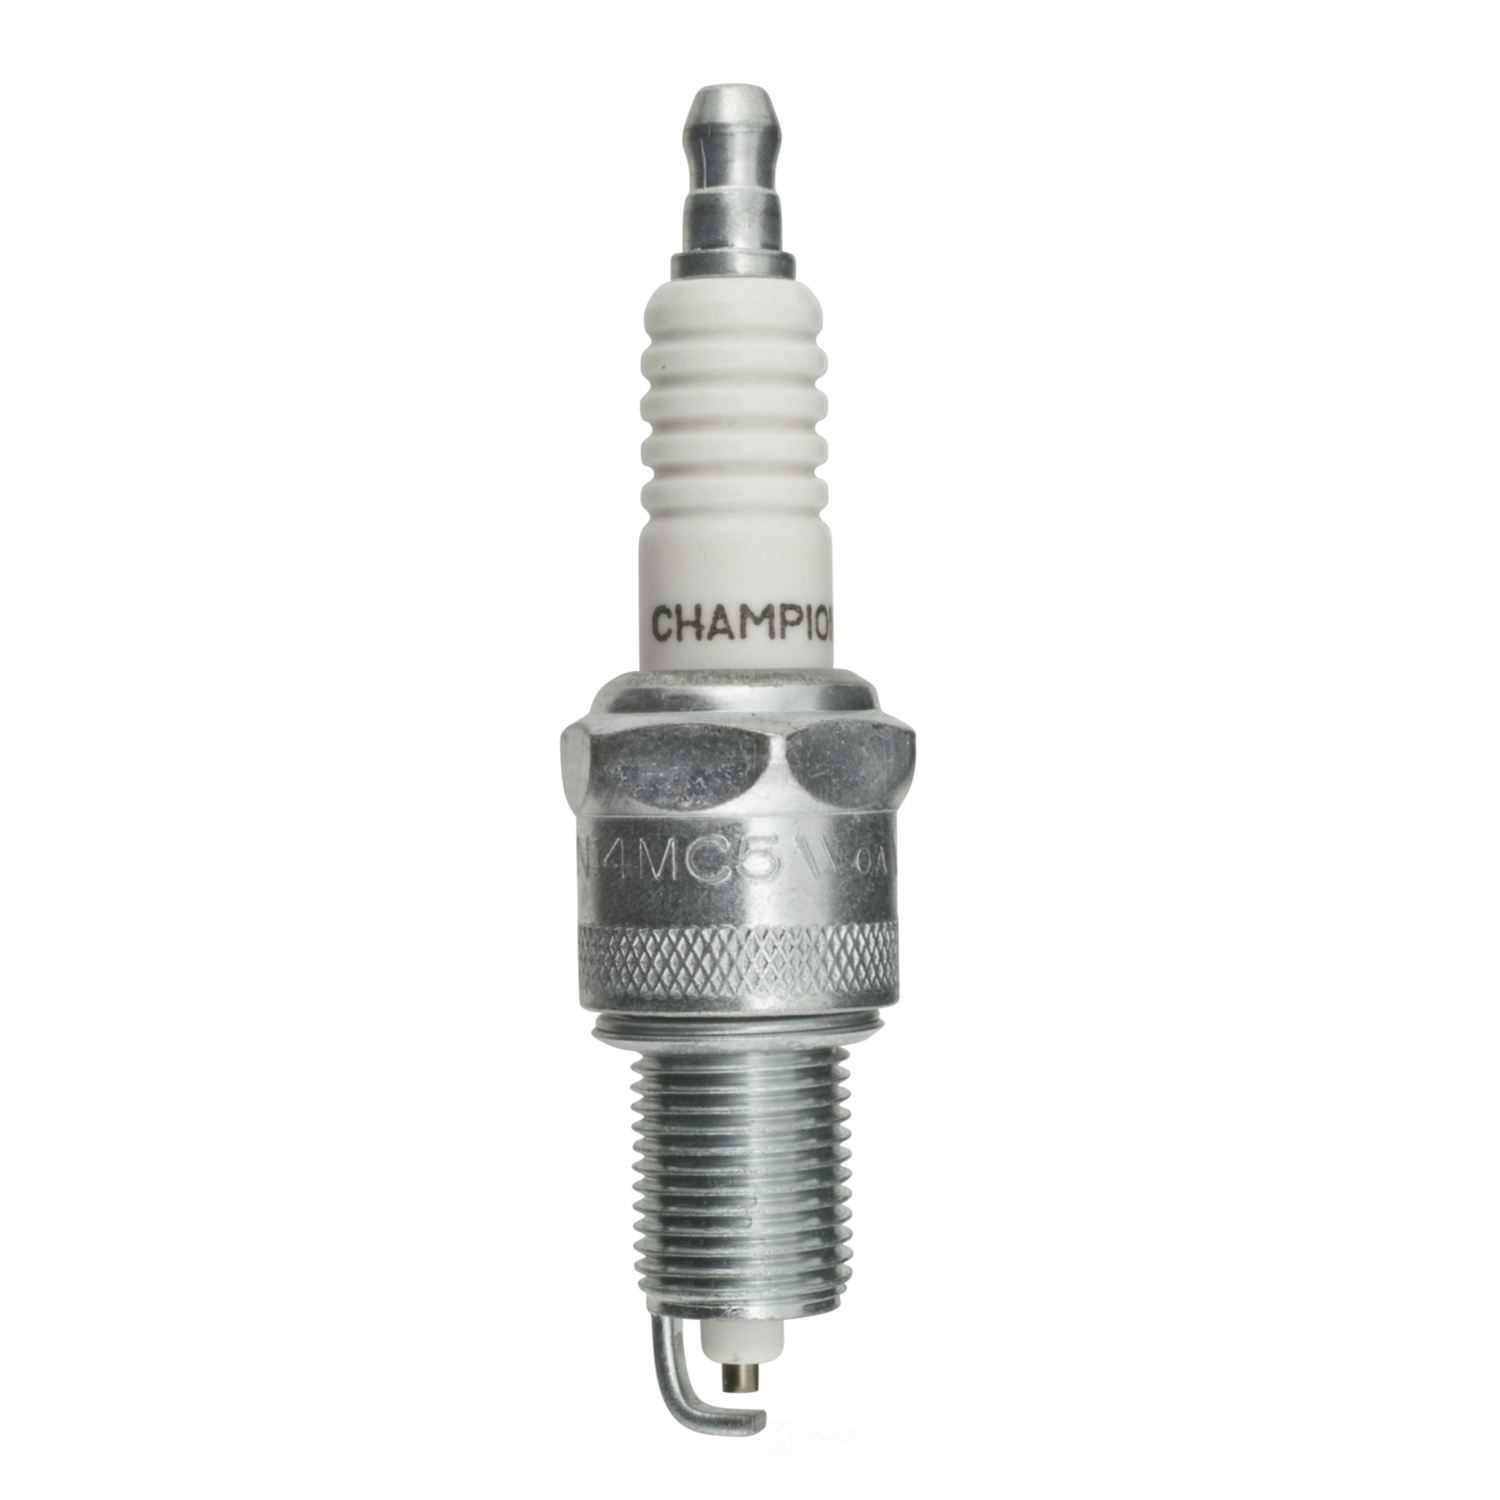 CHAMPION SPARK PLUGS - Copper Plus Spark Plug - CHA 31